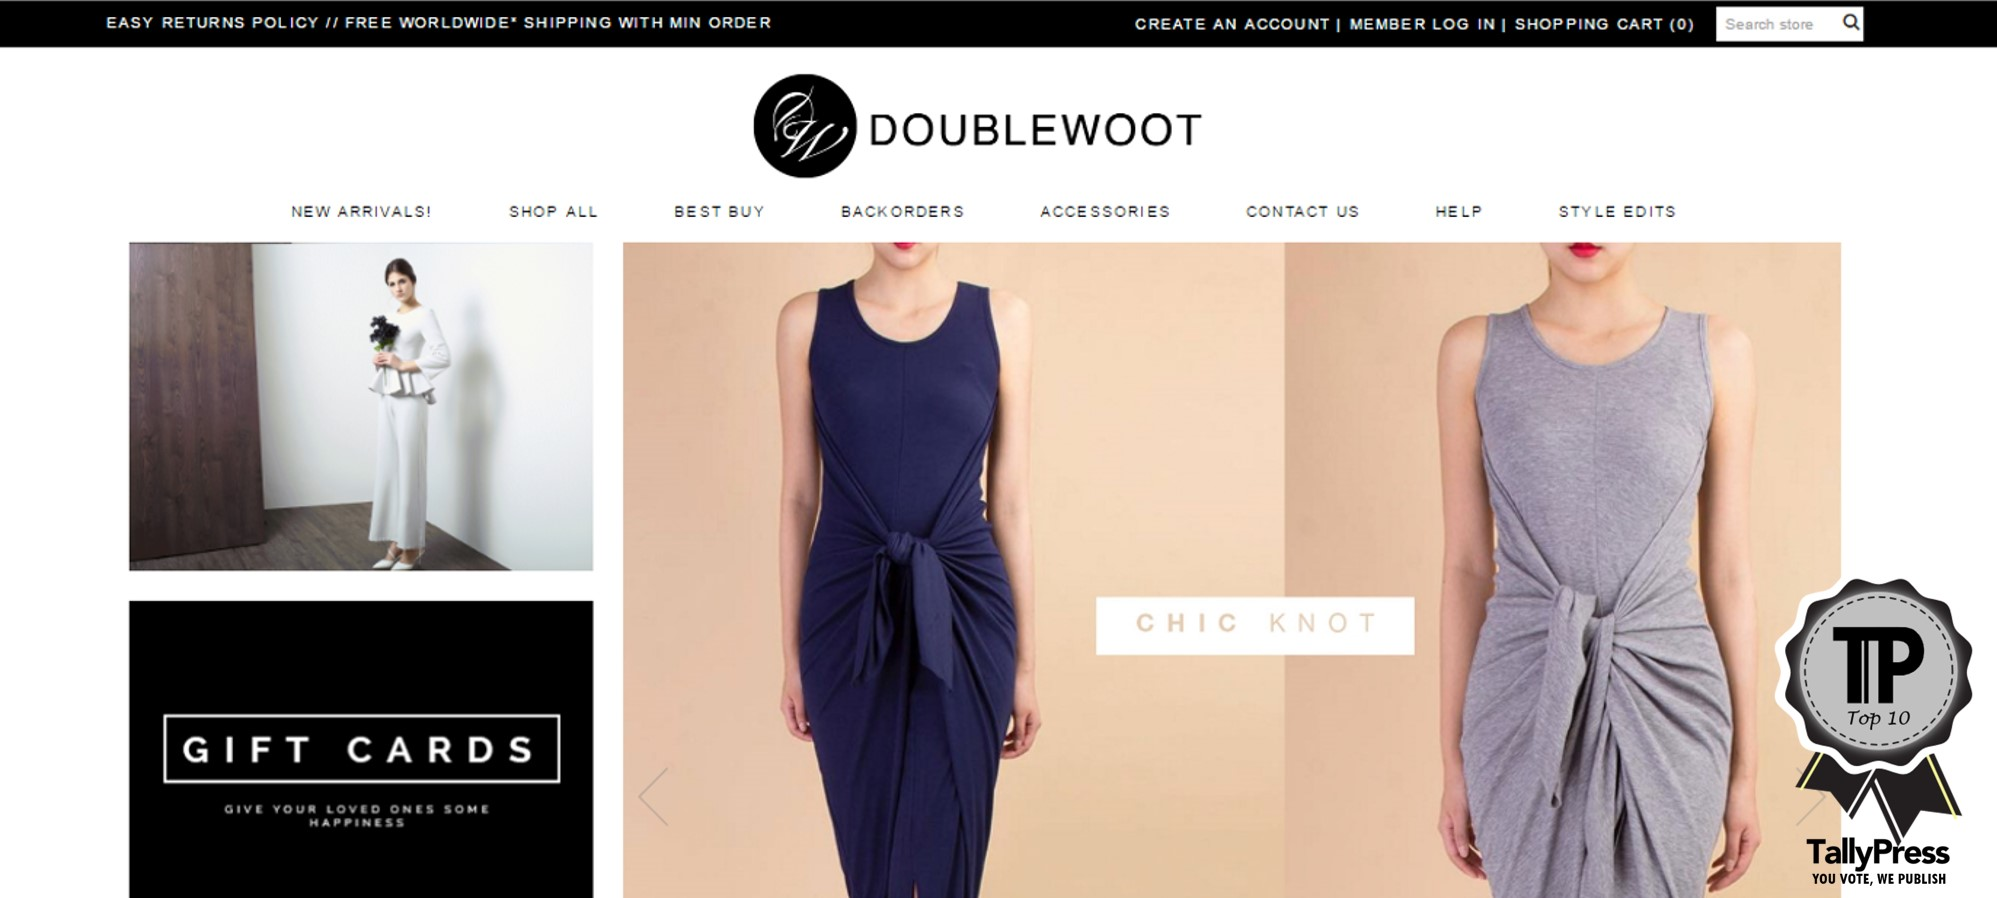 Ranked: 25 Best Online Clothing Stores- theFashionSpot